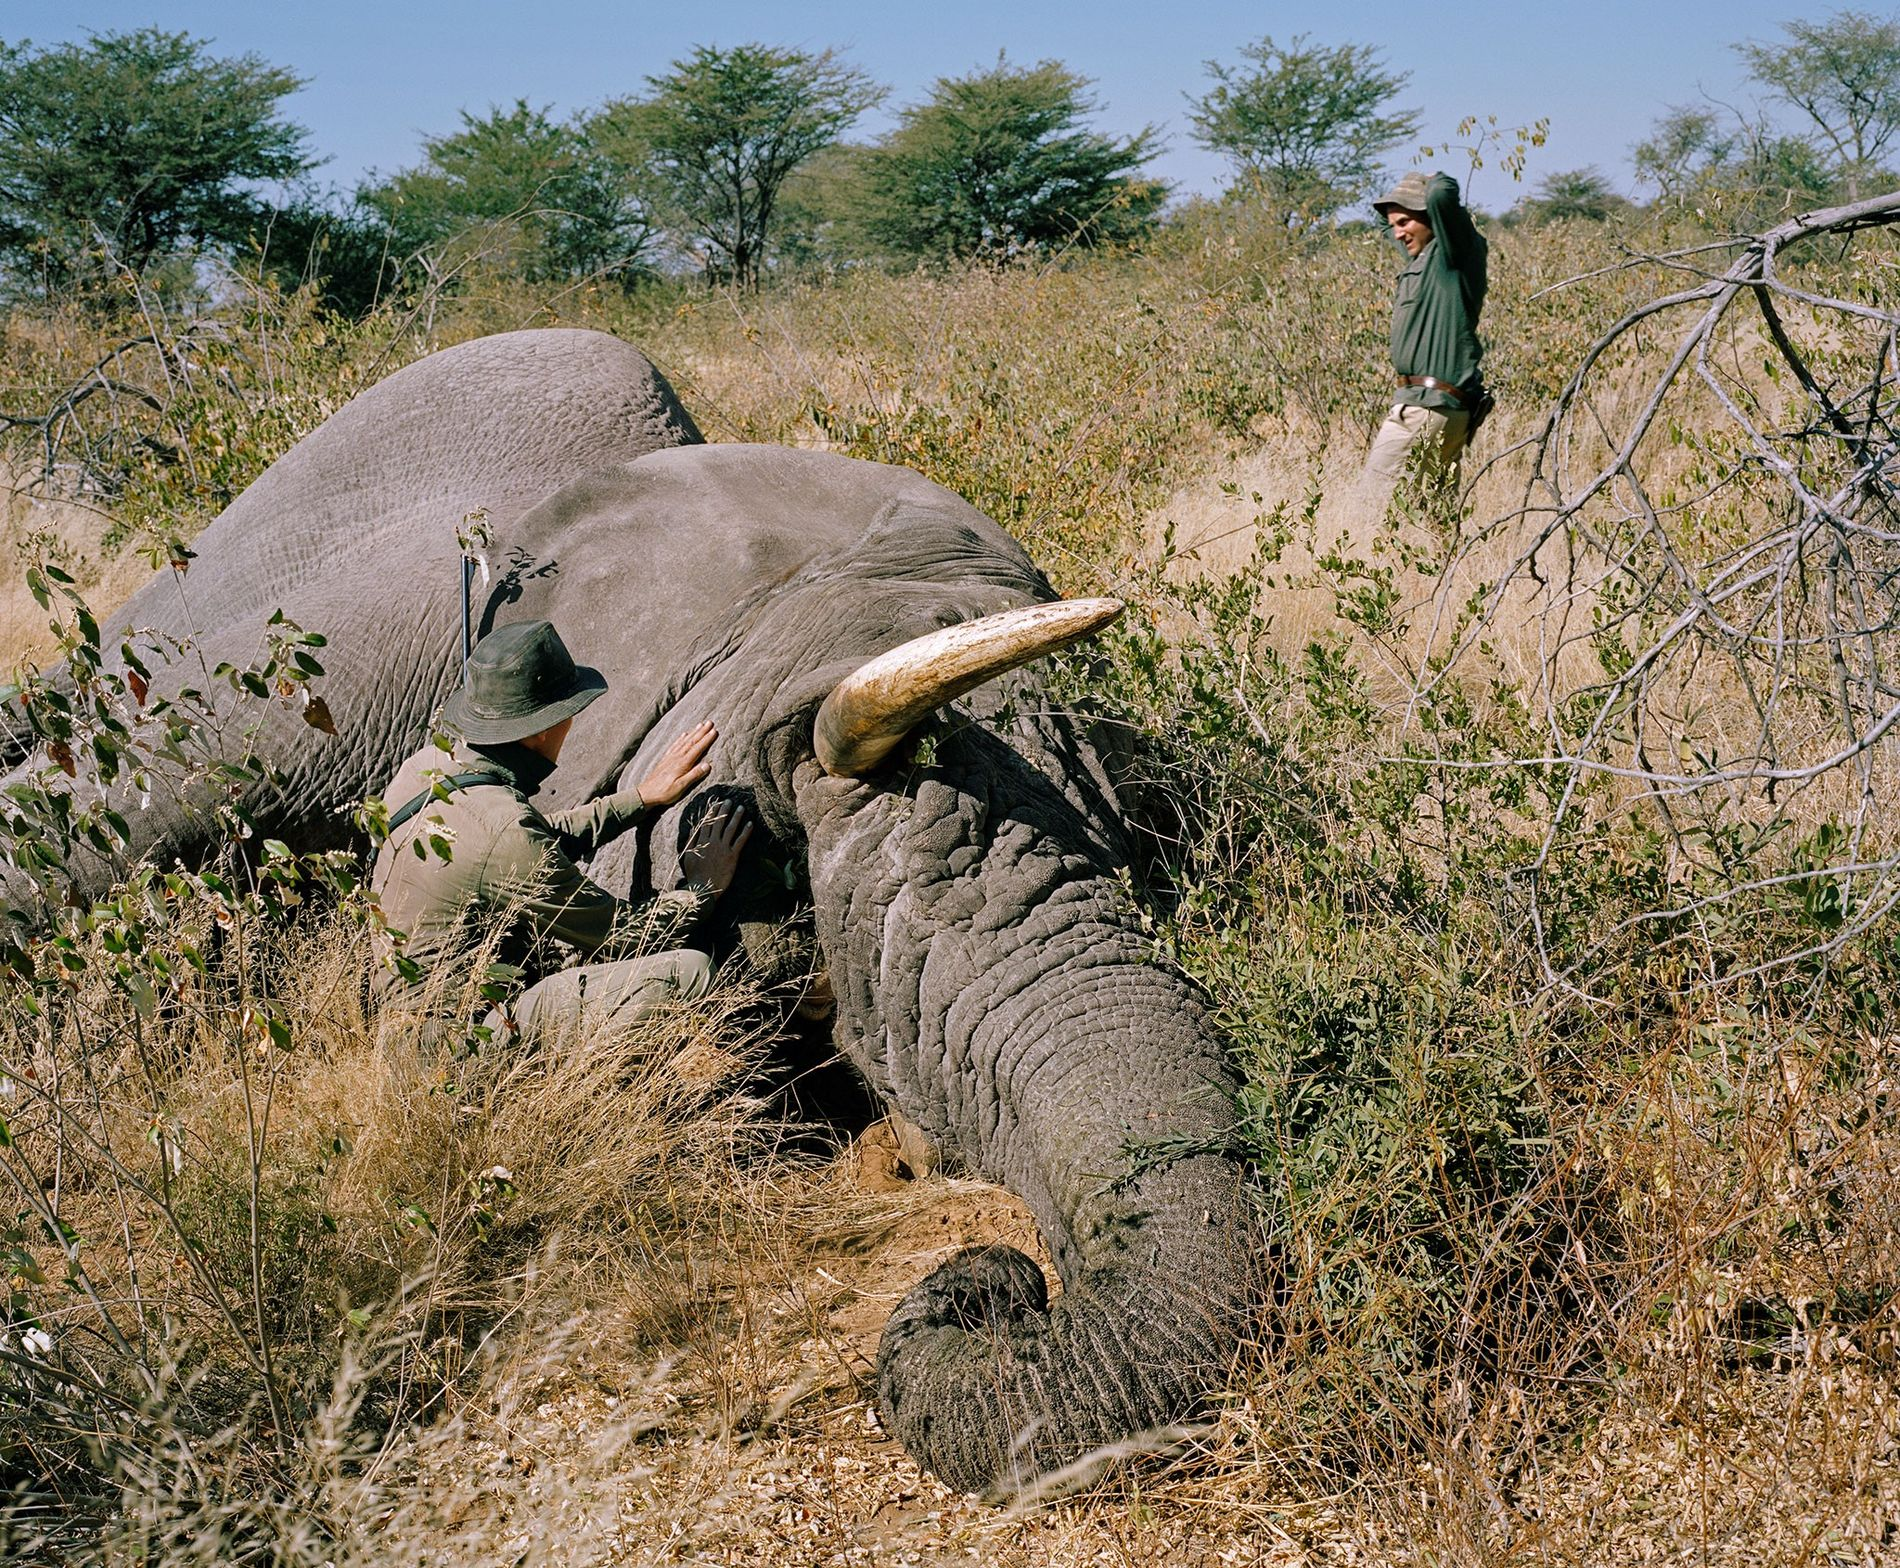 A German hunter kills an old bull elephant in Namibia. There is a long-running debate as to whether and how trophy hunting benefits conservation.